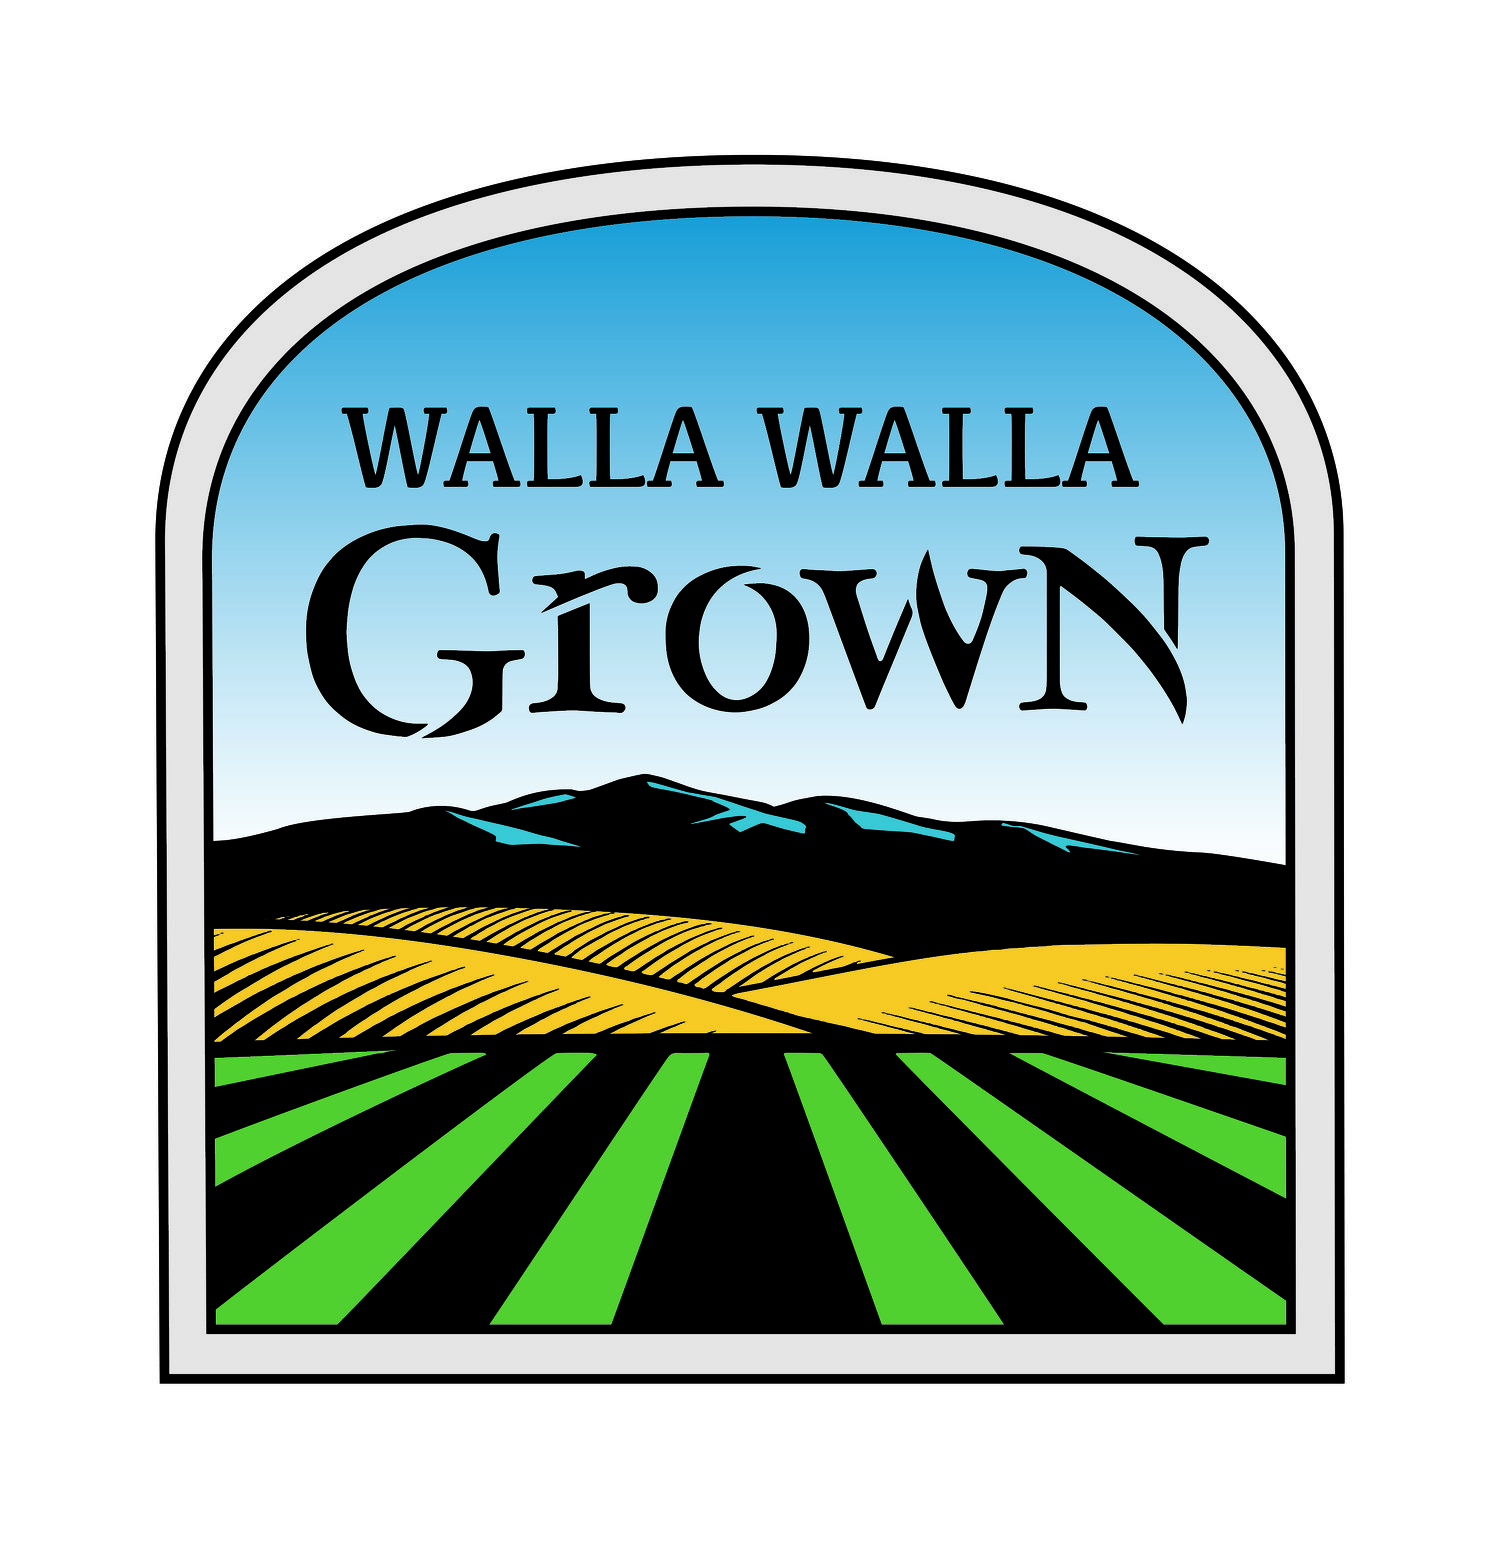 Walla Walla Grown